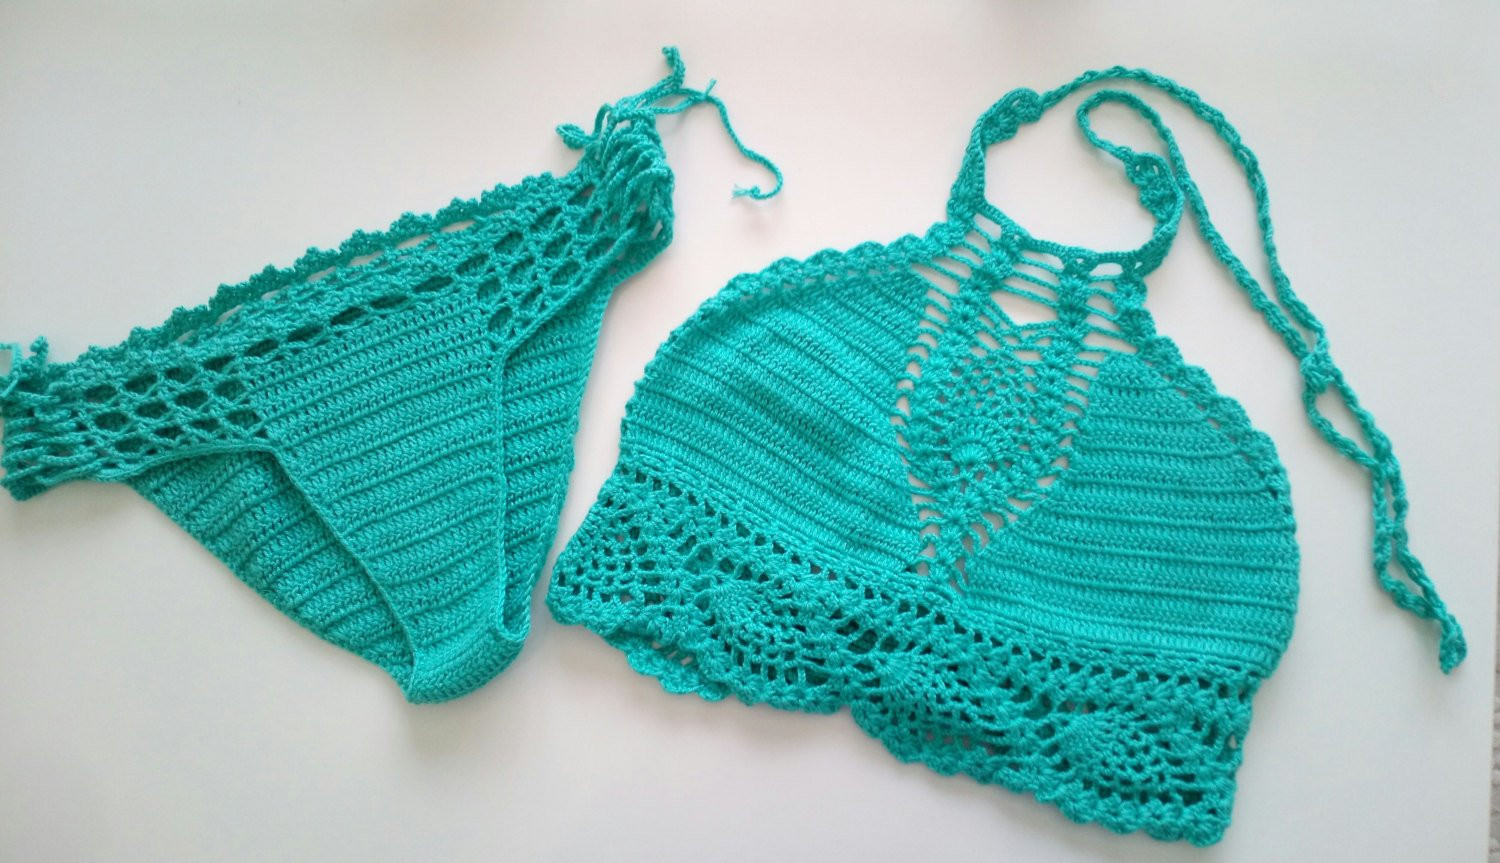 Crochet Swim Suit Elegant Teal Color Crochet Bikini top and Brazilian Bottom Swimwear Of Marvelous 44 Models Crochet Swim Suit